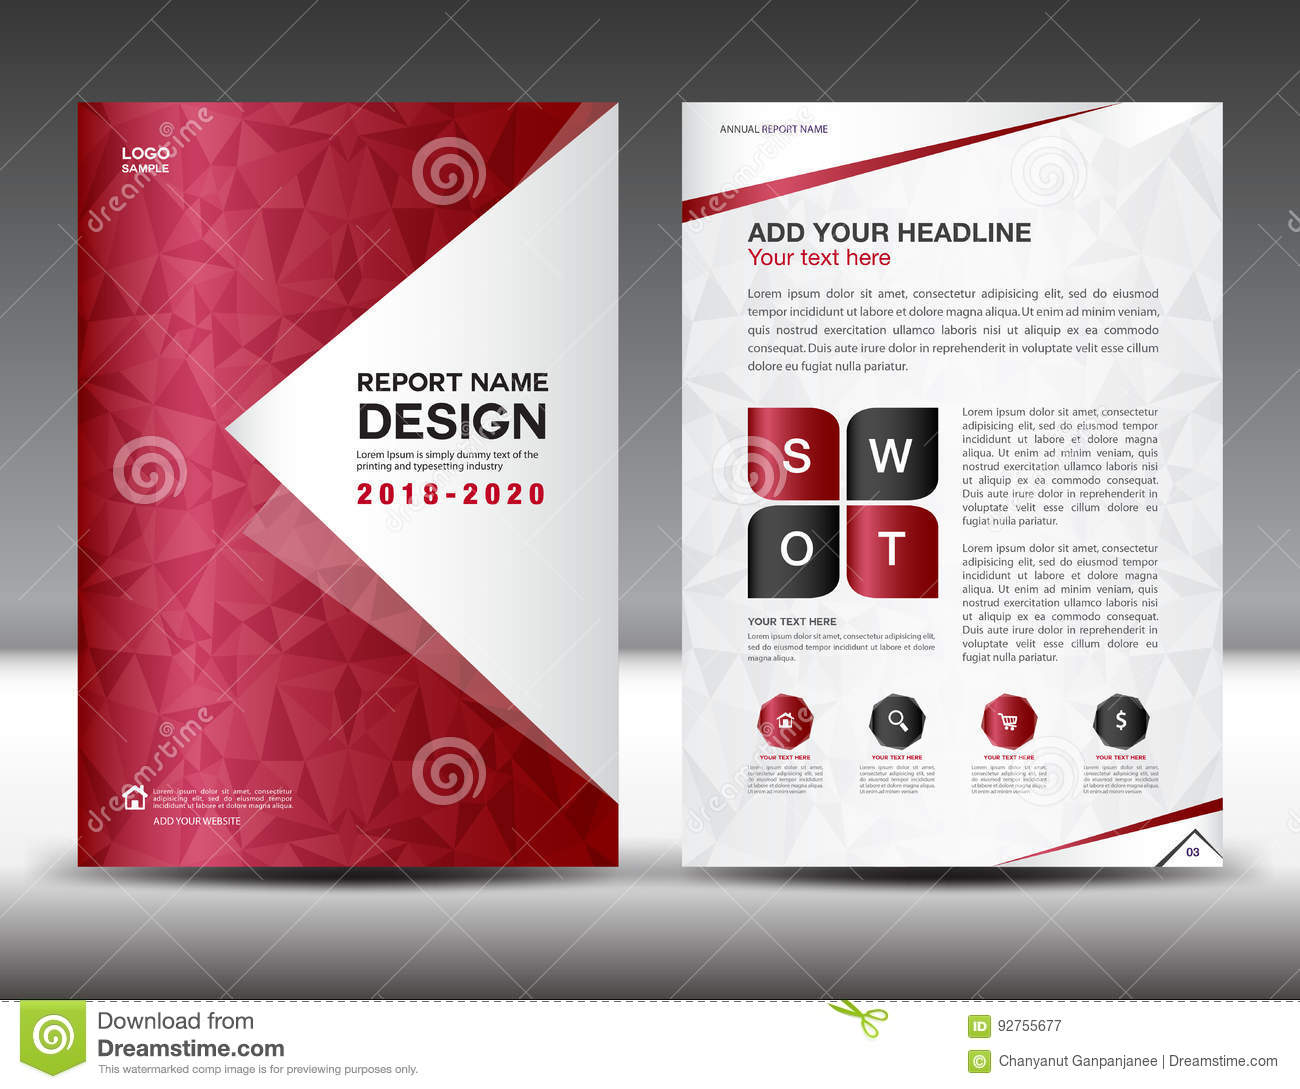 Business brochure flyer template in A4 size, Red Cover design